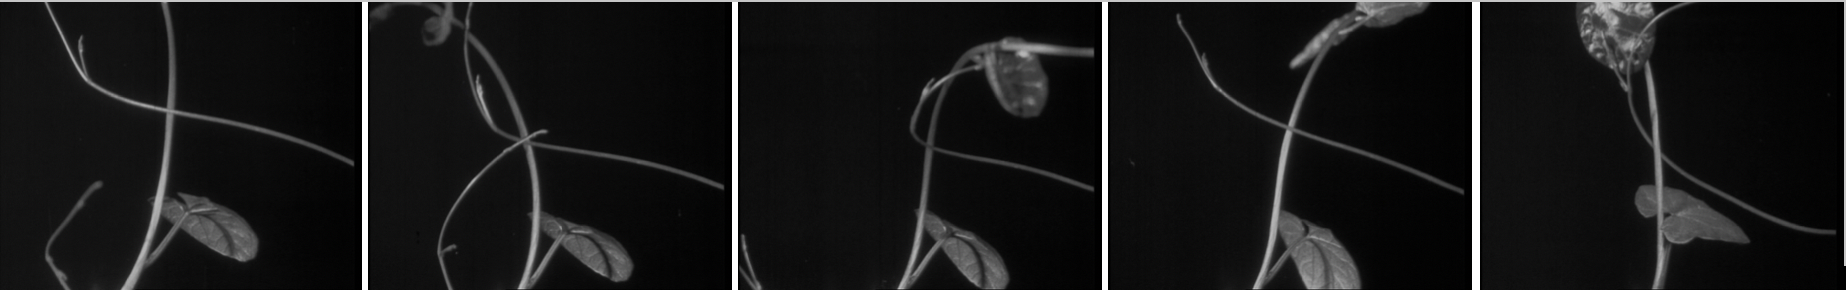 The dodder attempts to wind around the convolvulus plant, which moves to evade it. The Strangler, directed by F. Percy Smith, British Instructional Films, 1930.